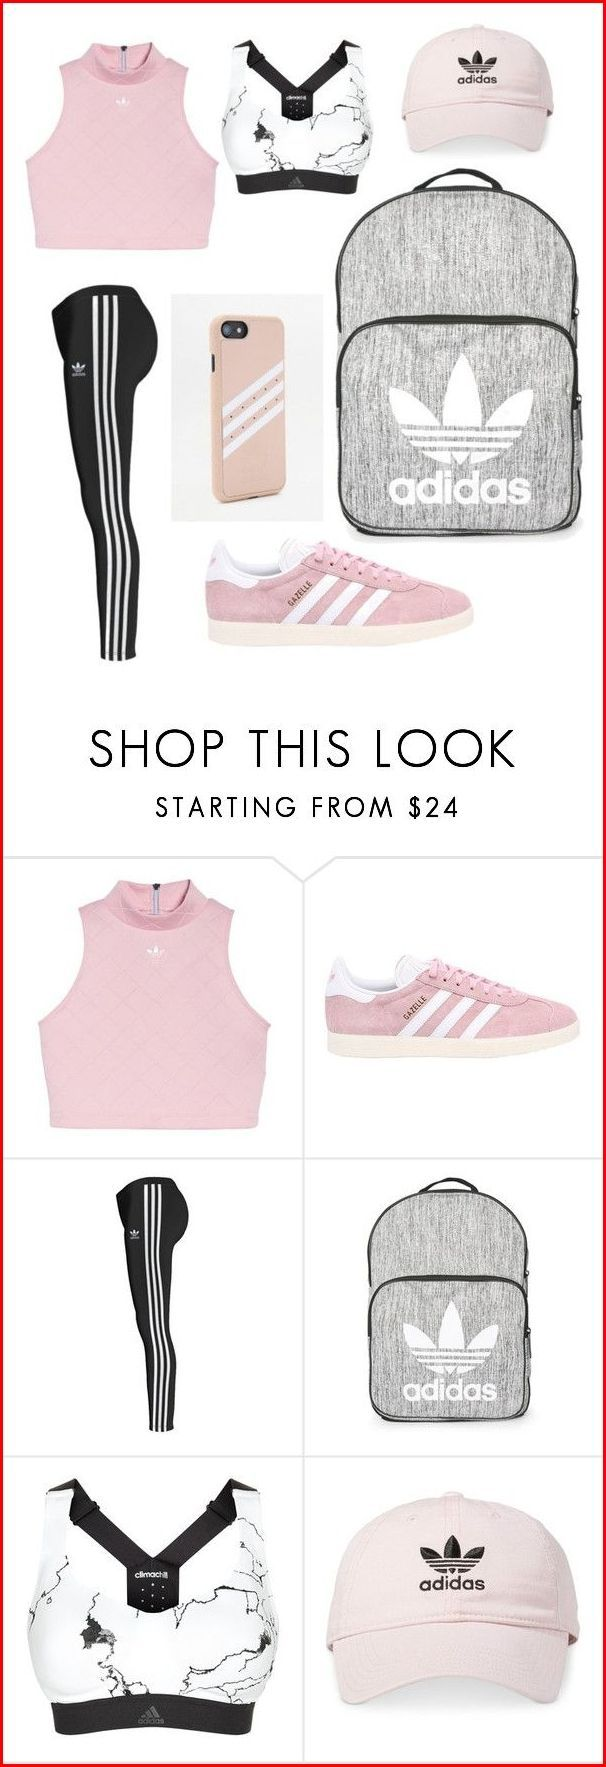 Teen clothes. Discover the latest, straight from the cat walk, fashion trends